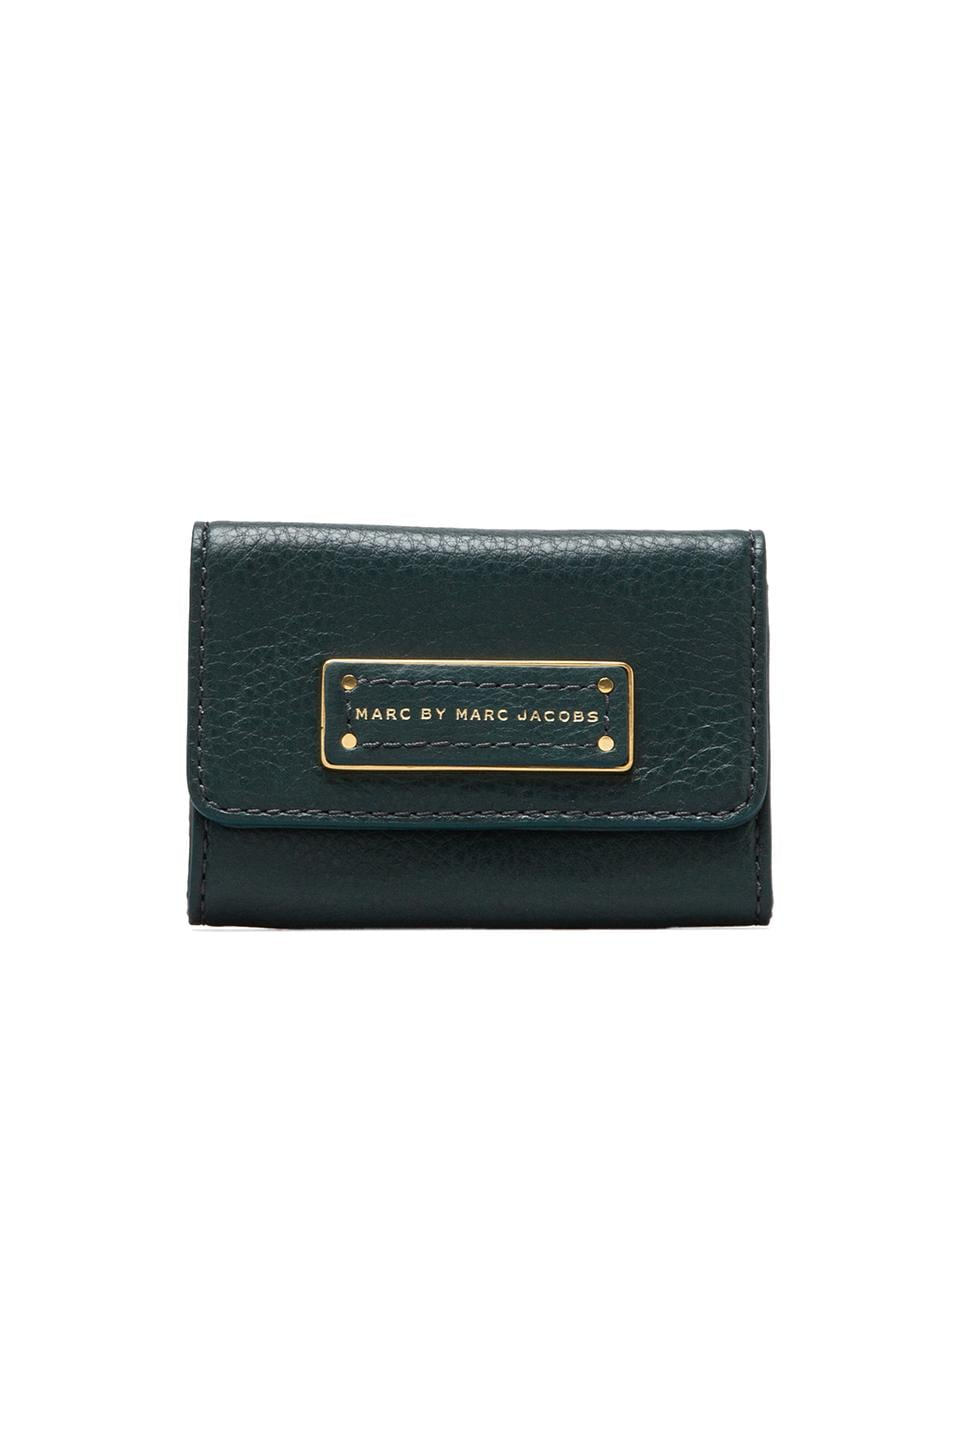 Marc by Marc Jacobs Too Hot to Handle Card Case in Teal Goblet